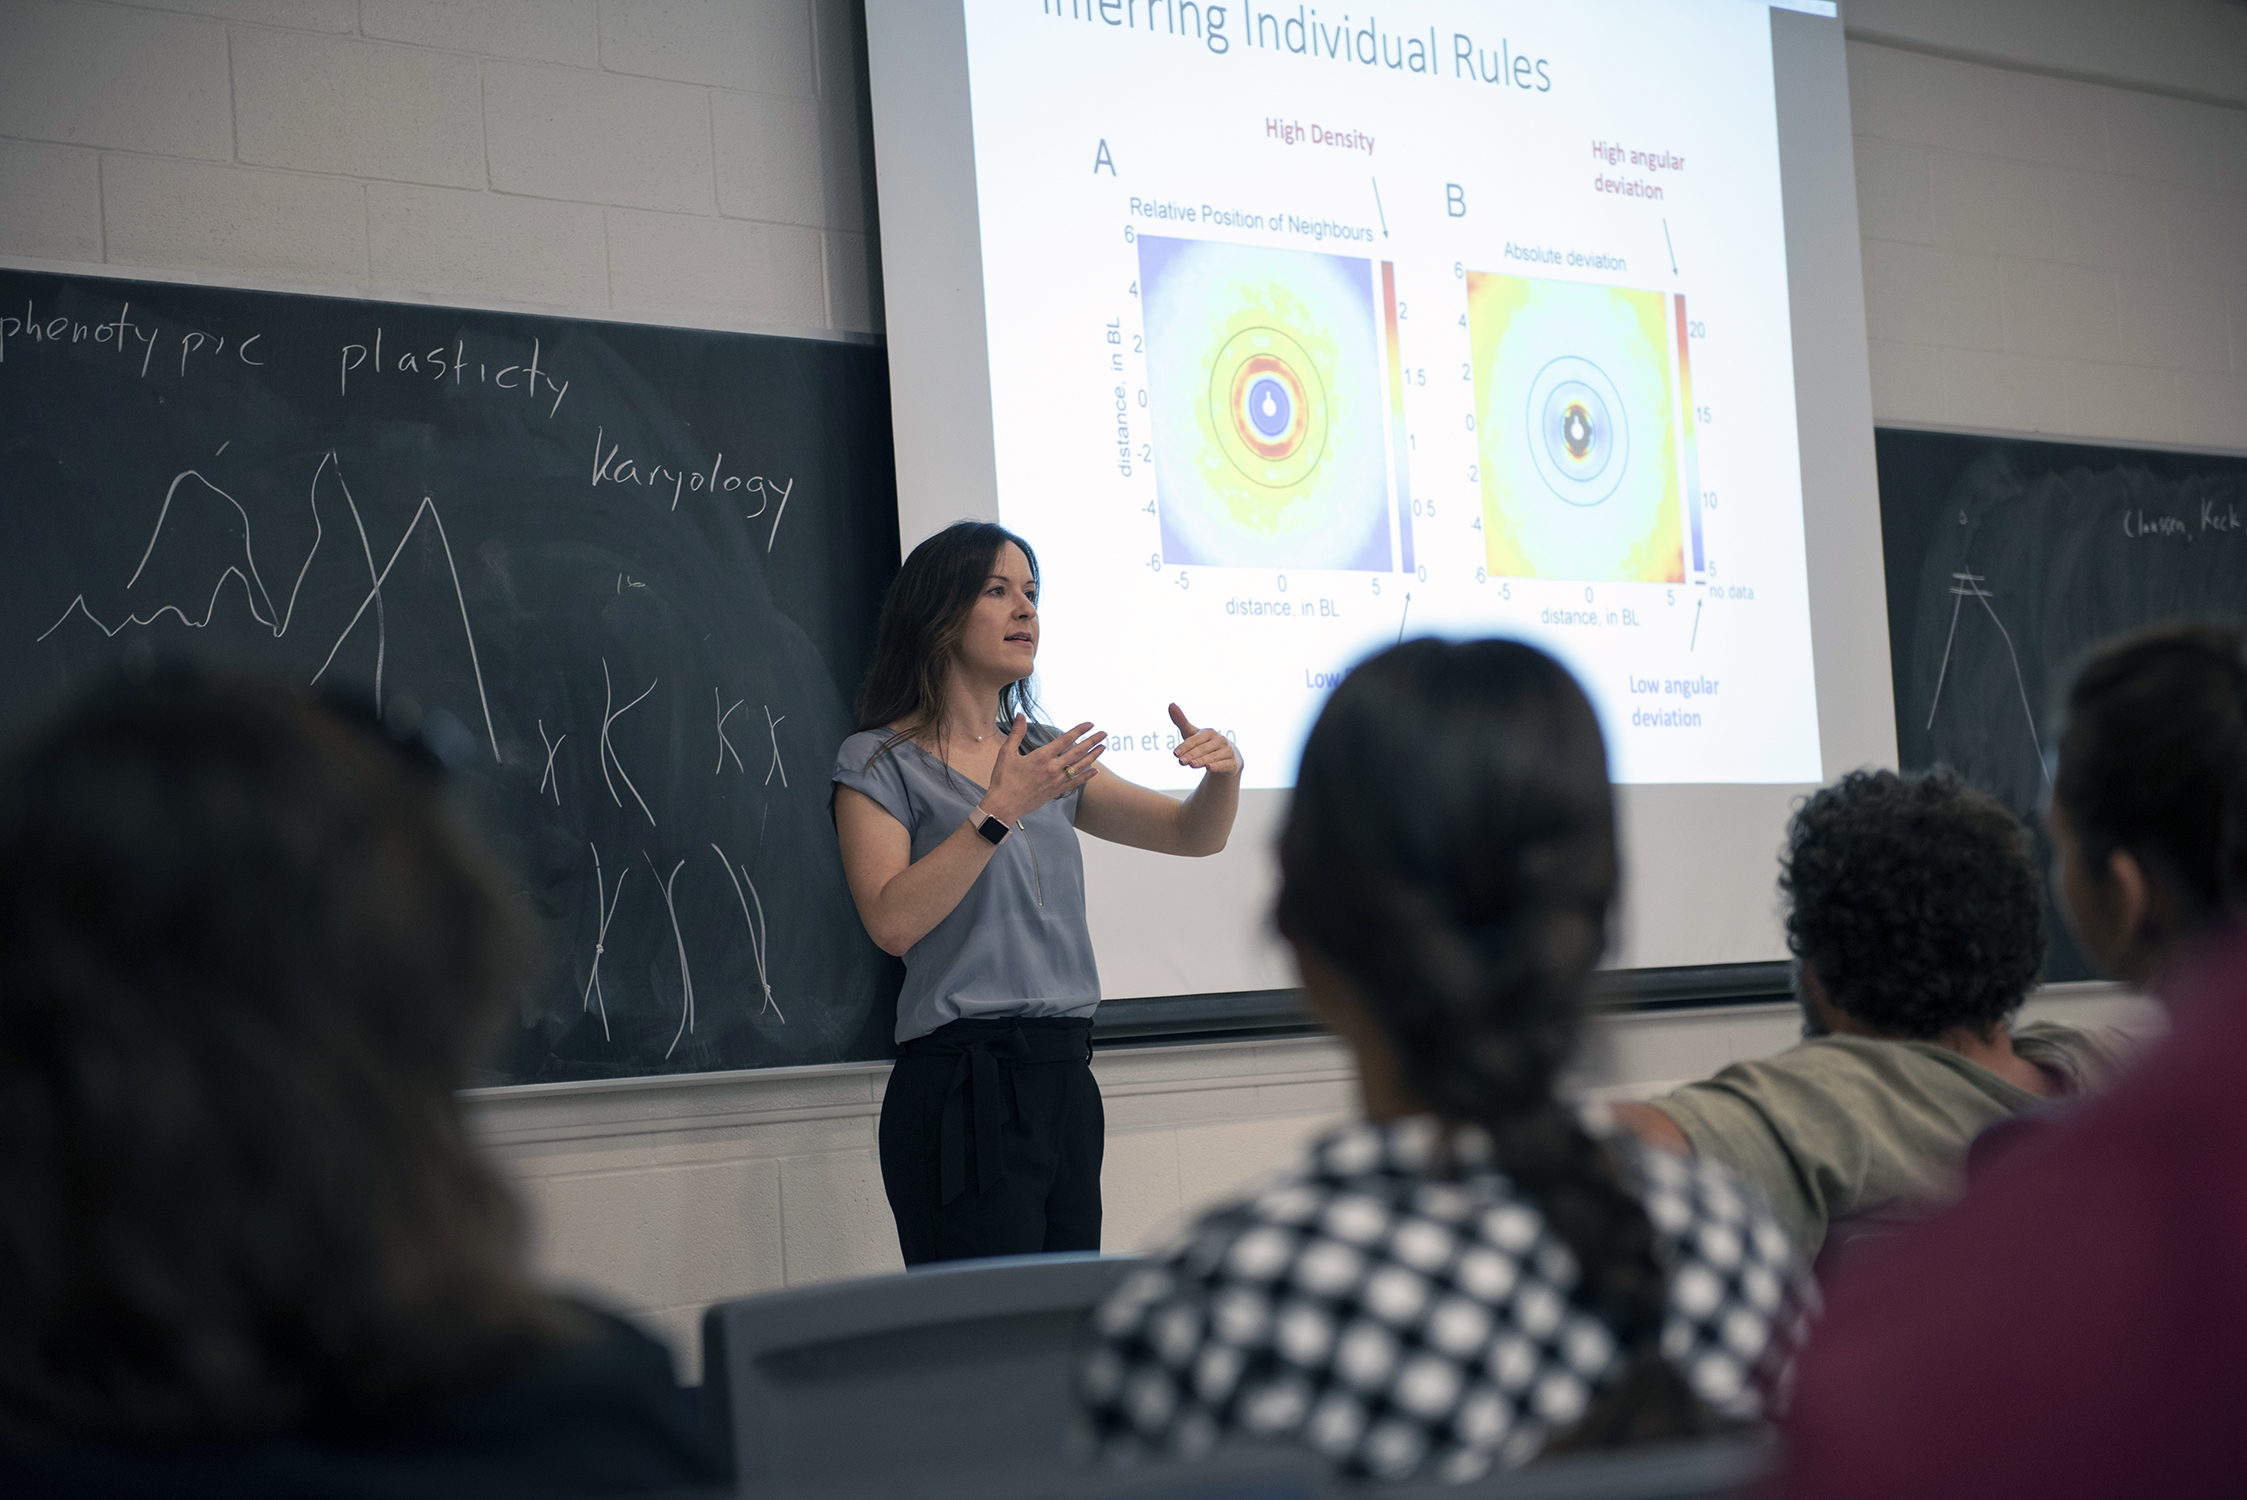 Science graduate student Lisa Bryan lectures to a classroom full of students